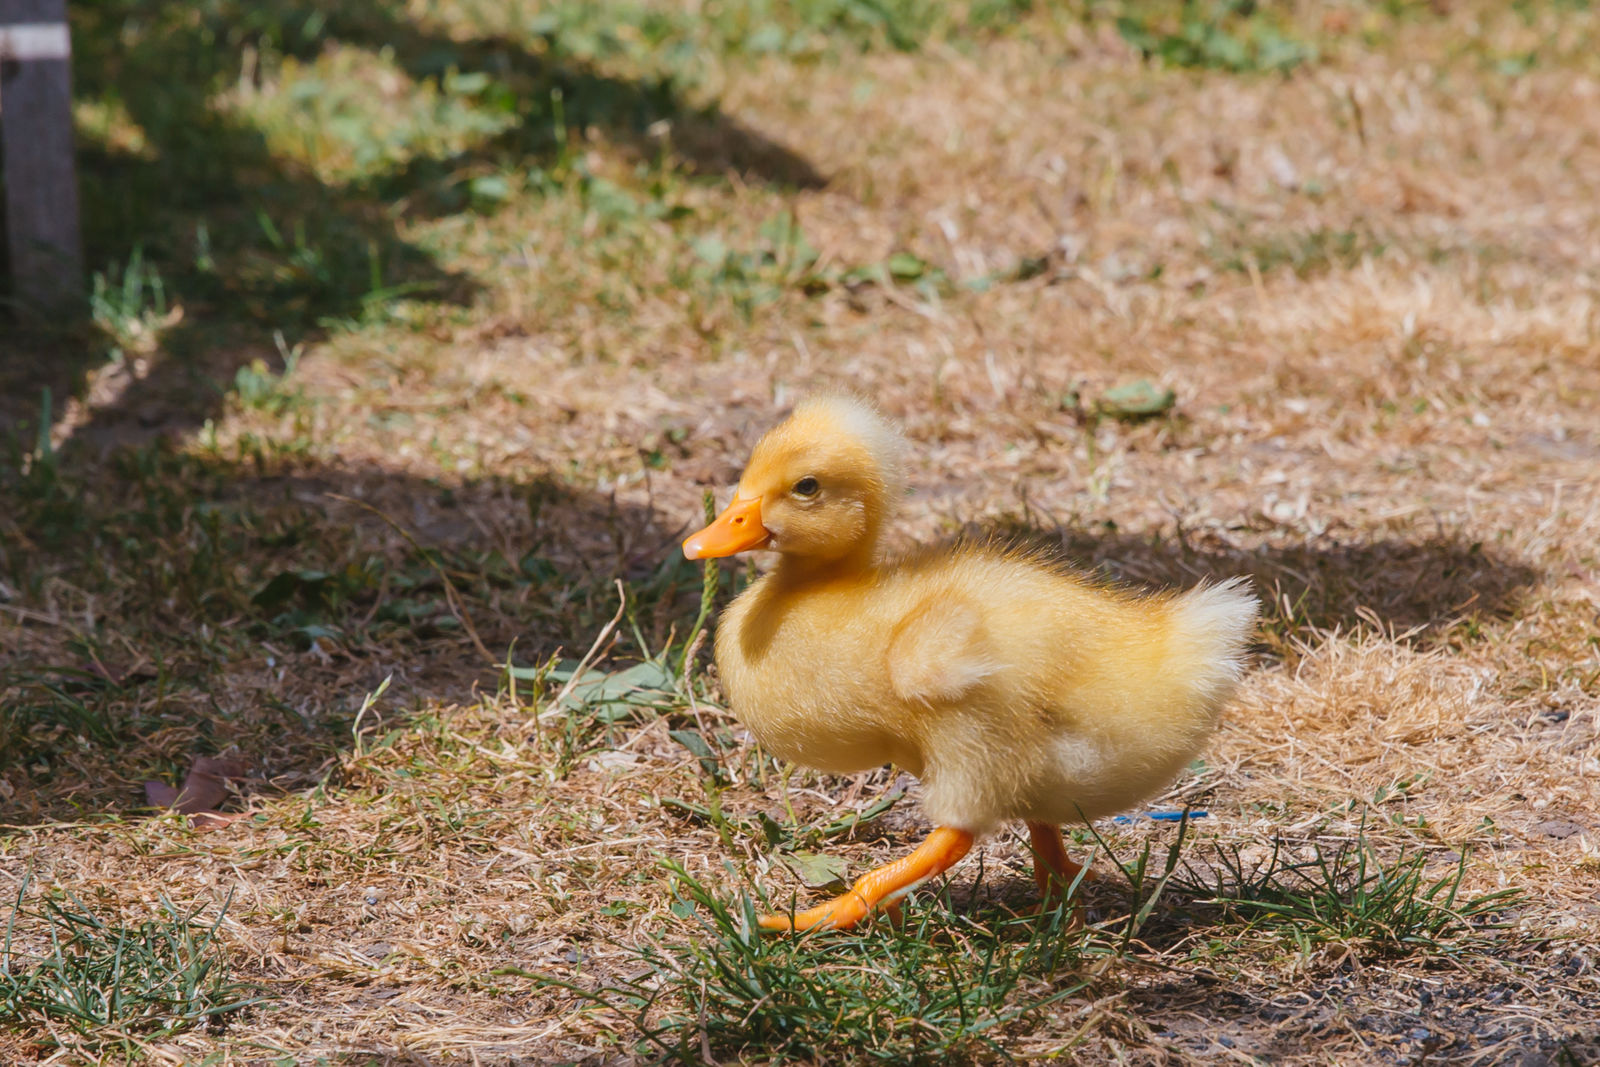 "Duckie was born on a farm in Port Angeles but currently venturing Capitol Hill with his pops! The two-week-old Bali Duck loves being warm, swimming, blackberries and people, but isn't a huge fan of being tickled — seriously, don't do it.{&nbsp;}<a  href=""http://seattlerefined.com/ruffined"" target=""_blank"" title=""http://seattlerefined.com/ruffined"">The RUFFined Spotlight</a>{&nbsp;}is a weekly profile of local pets living and loving life in the PNW. If you or someone you know has a pet you'd like featured, email us at{&nbsp;}<a  href=""mailto:hello@seattlerefined.com"" target=""_blank"" title=""mailto:hello@seattlerefined.com"">hello@seattlerefined.com</a>{&nbsp;}and your furbaby could be the next spotlighted! (Image: Sunita Martini / Seattle Refined)"